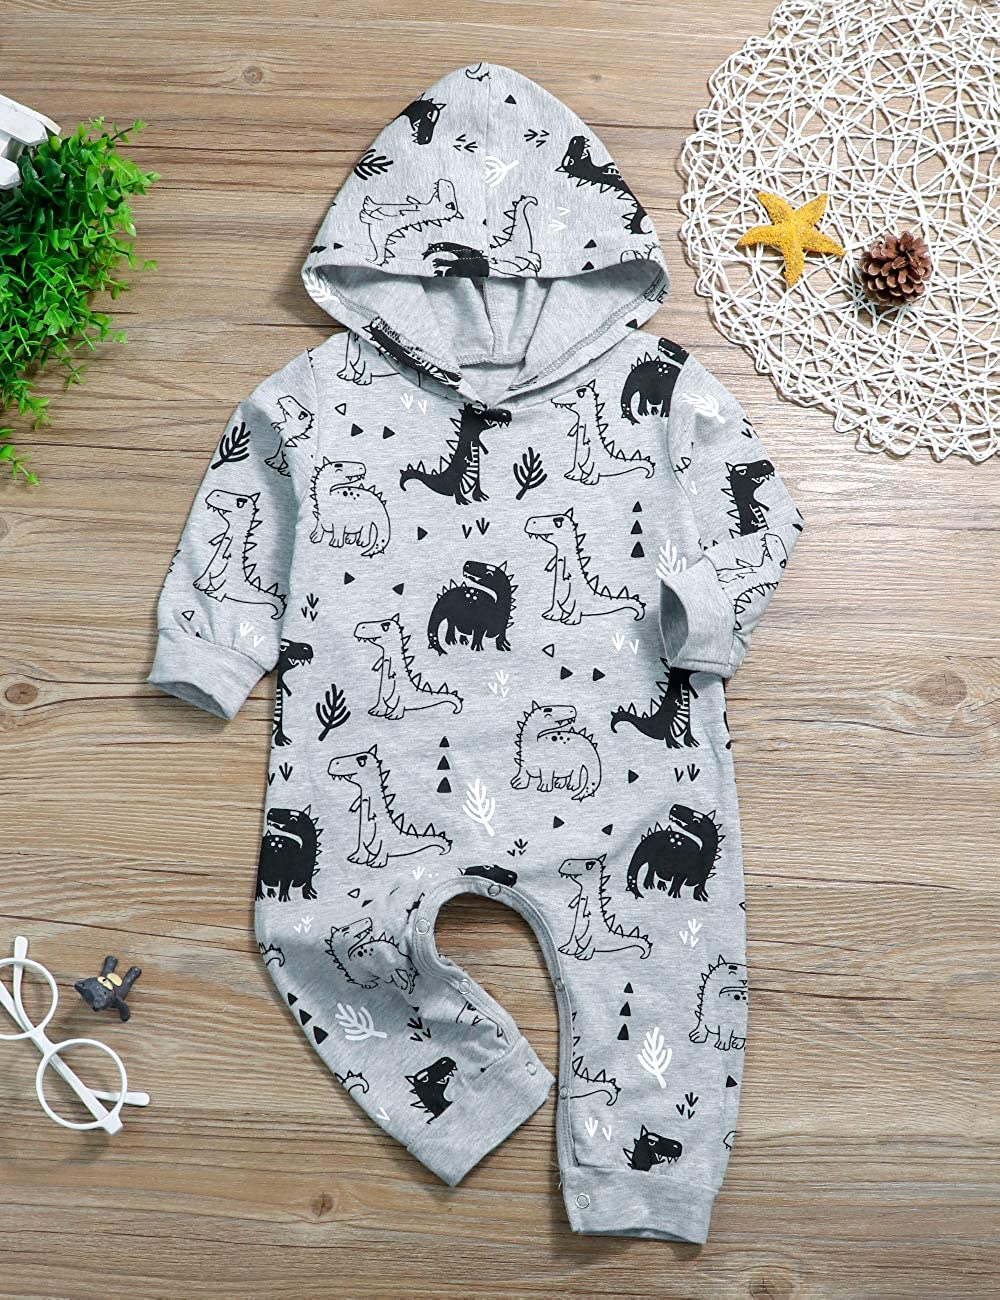 Toddler Baby Boys Clothes Dinosaurs Print Cotton Romper Newborn Long Sleeve Jumpsuit One Pieces Pajamas Playsuit